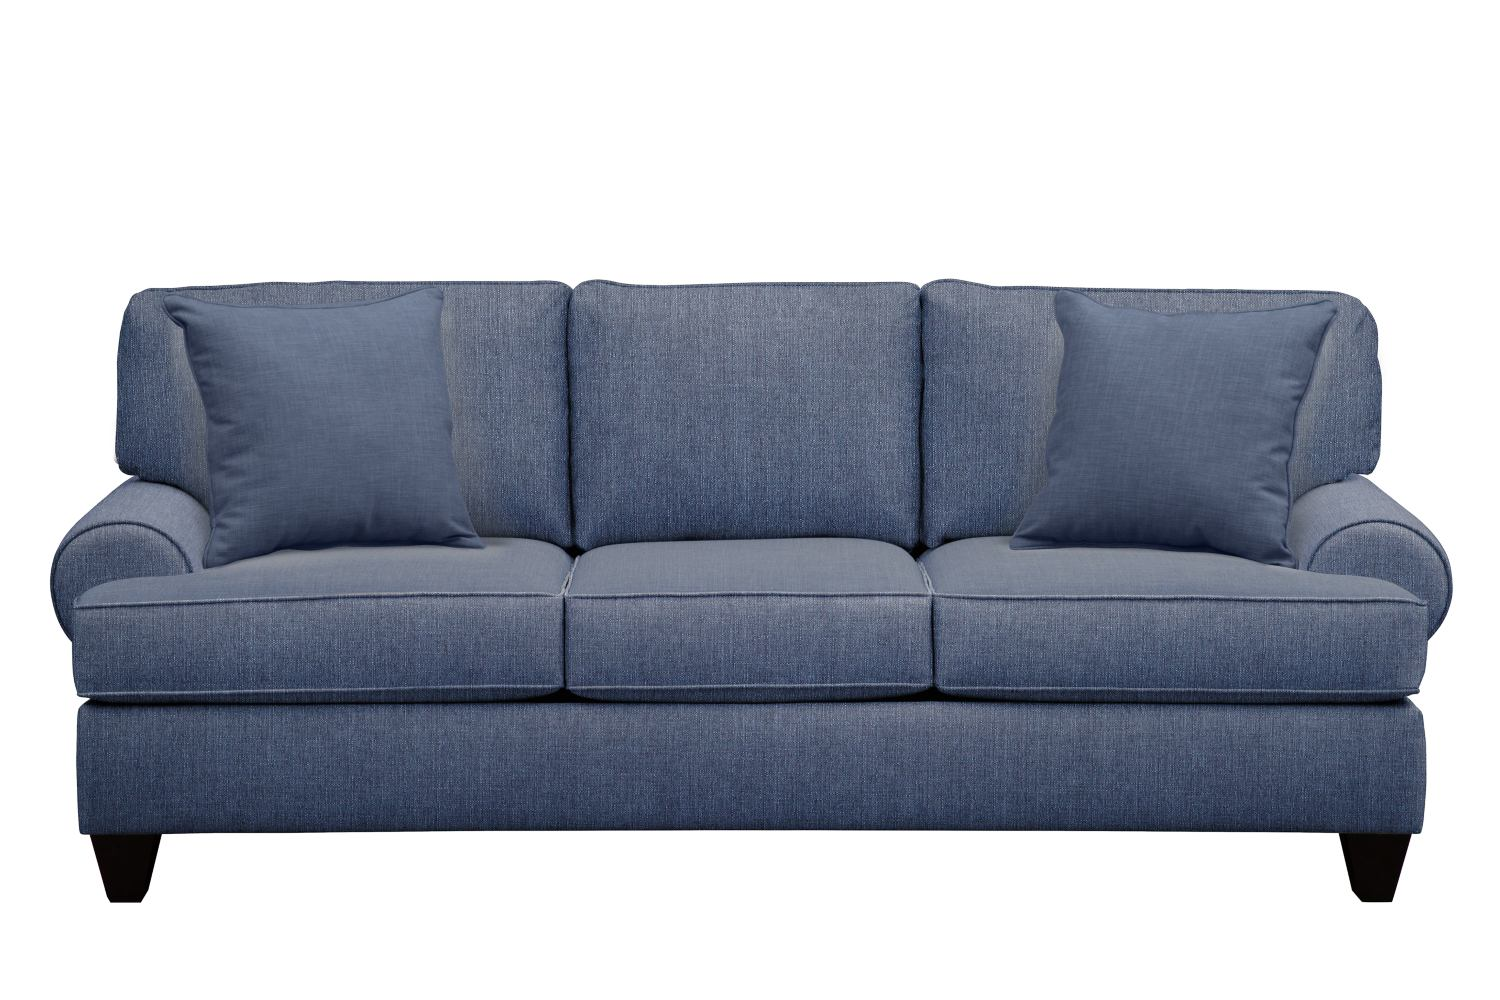 "Living Room Furniture - Bailey Roll Arm Sofa 91"" Depalma Ink w/ Depalma Ink Pillow"